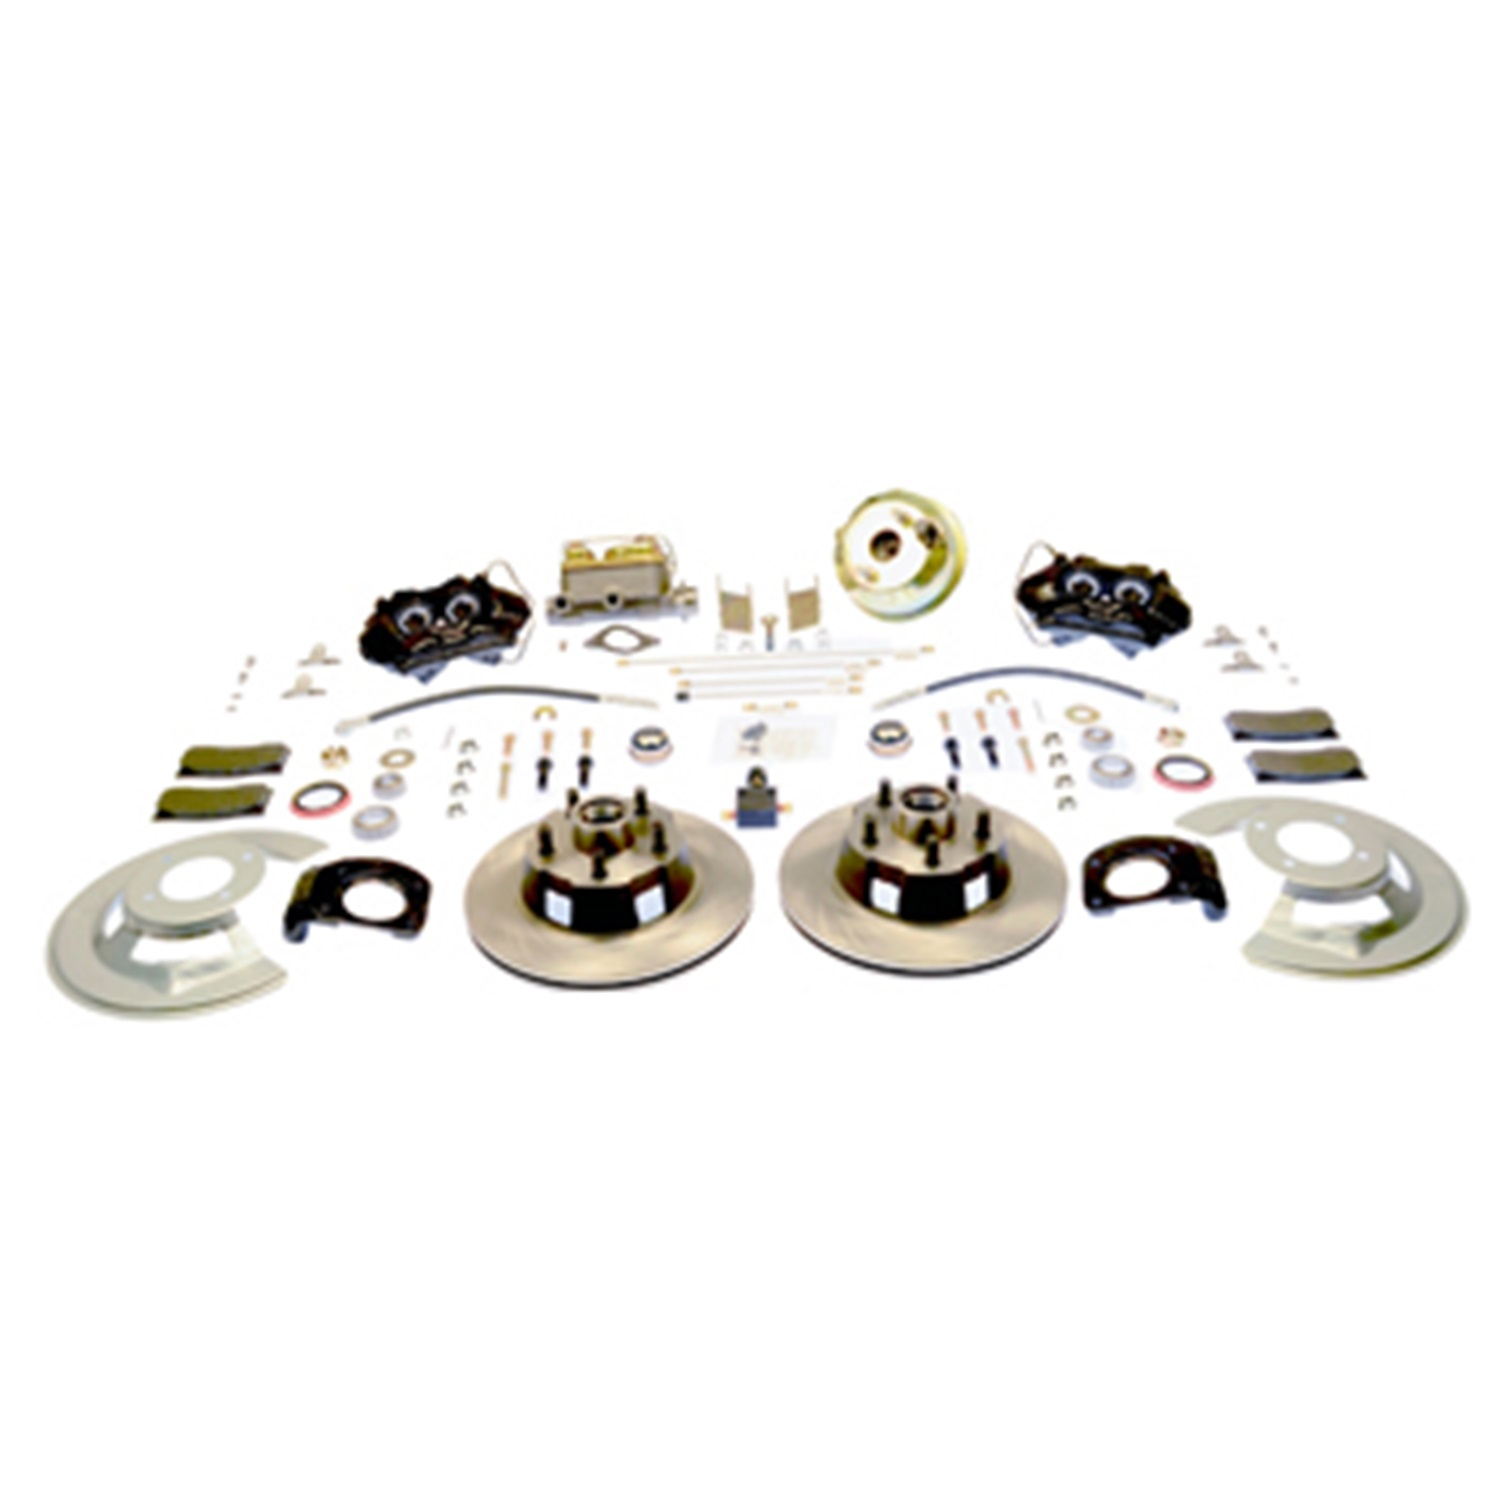 SSBC Performance Brakes A120-20 Drum To Disc Brake Conversion Kit Fits Mustang